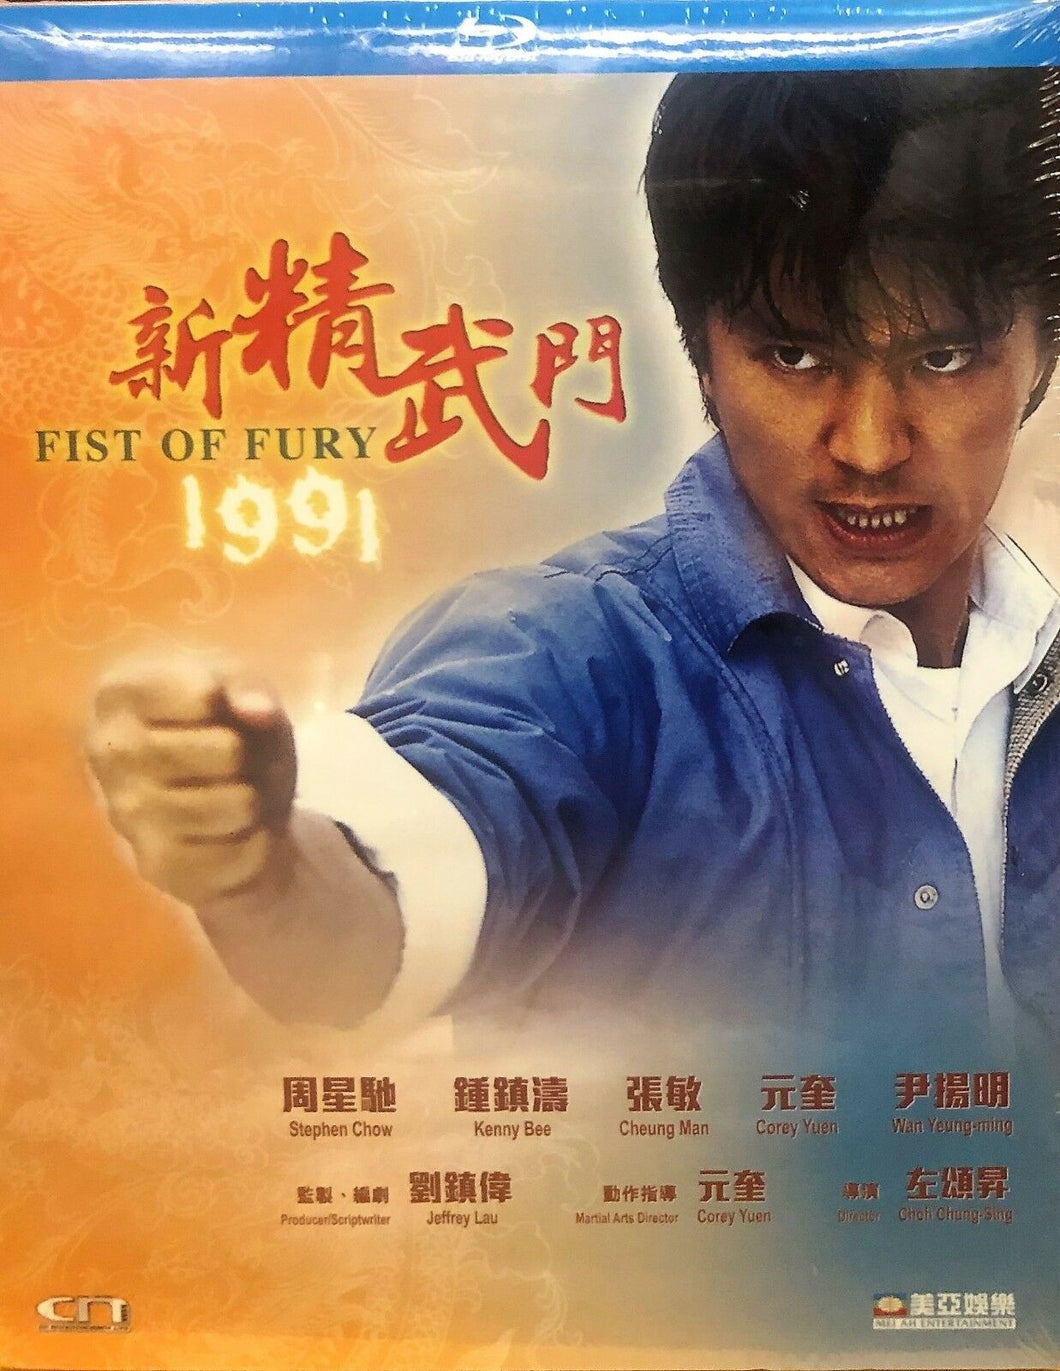 Fist of Fury 1991 新精武門 STEPHEN CHOW (Hong Kong Movie) BLU-RAY with English Sub (Region Free)